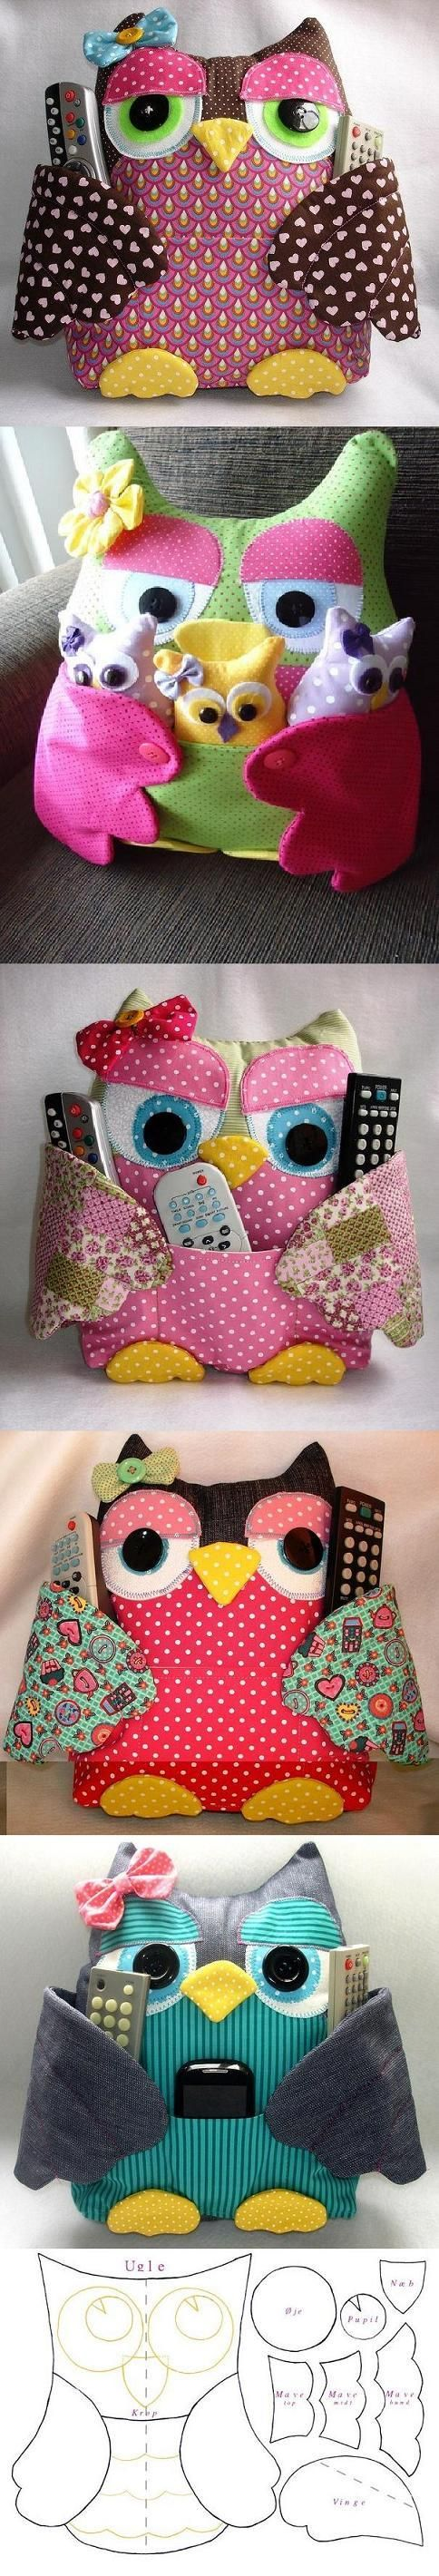 DIY Owl Pad with Pockets DIY Projects                                                                                                                                                      More